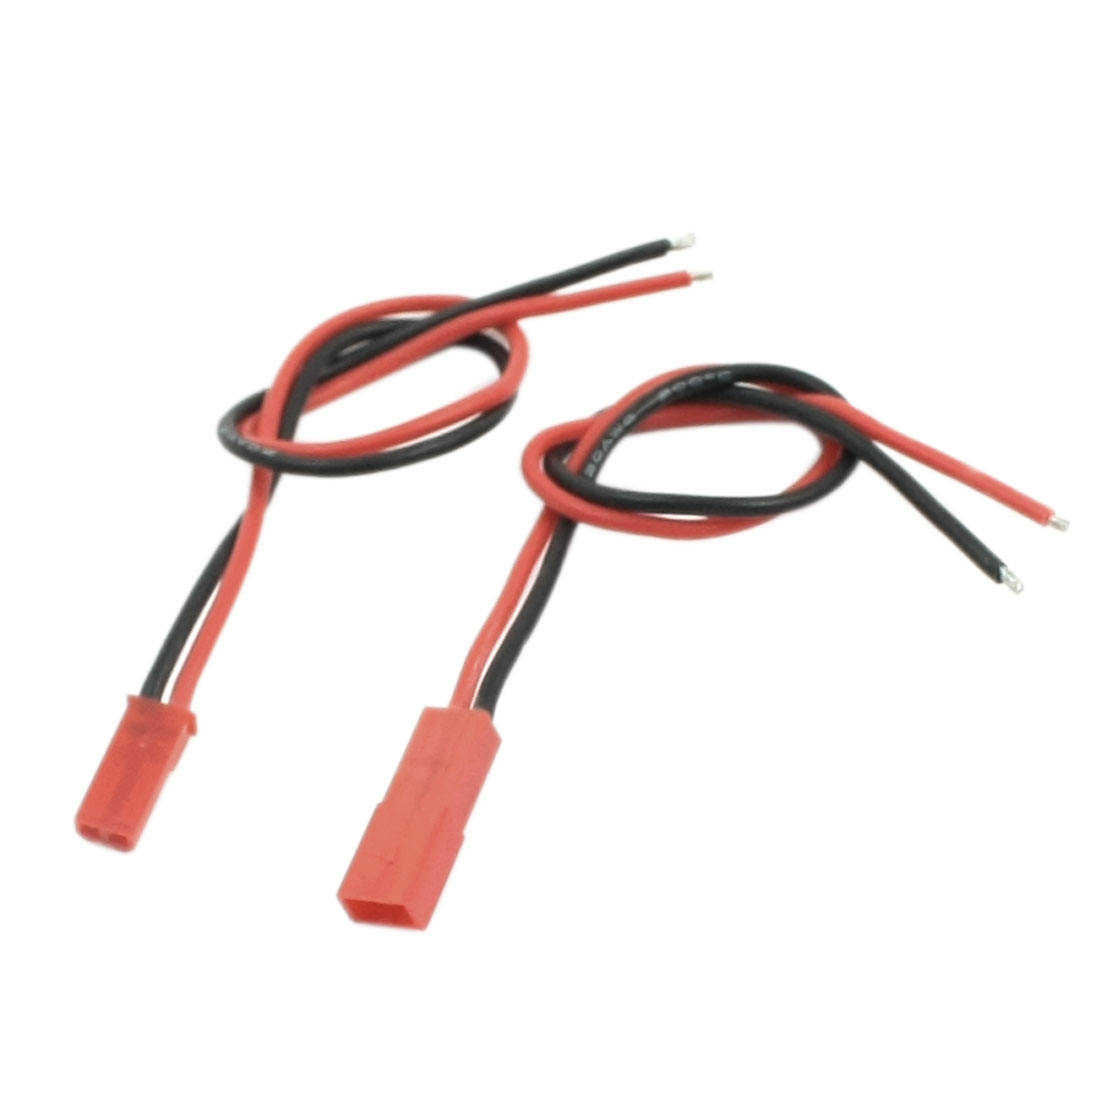 Pair 34cm Length 2Pin Male to Female JST Connector Adapter Lead Wire for DIY RC Li-Po Battery